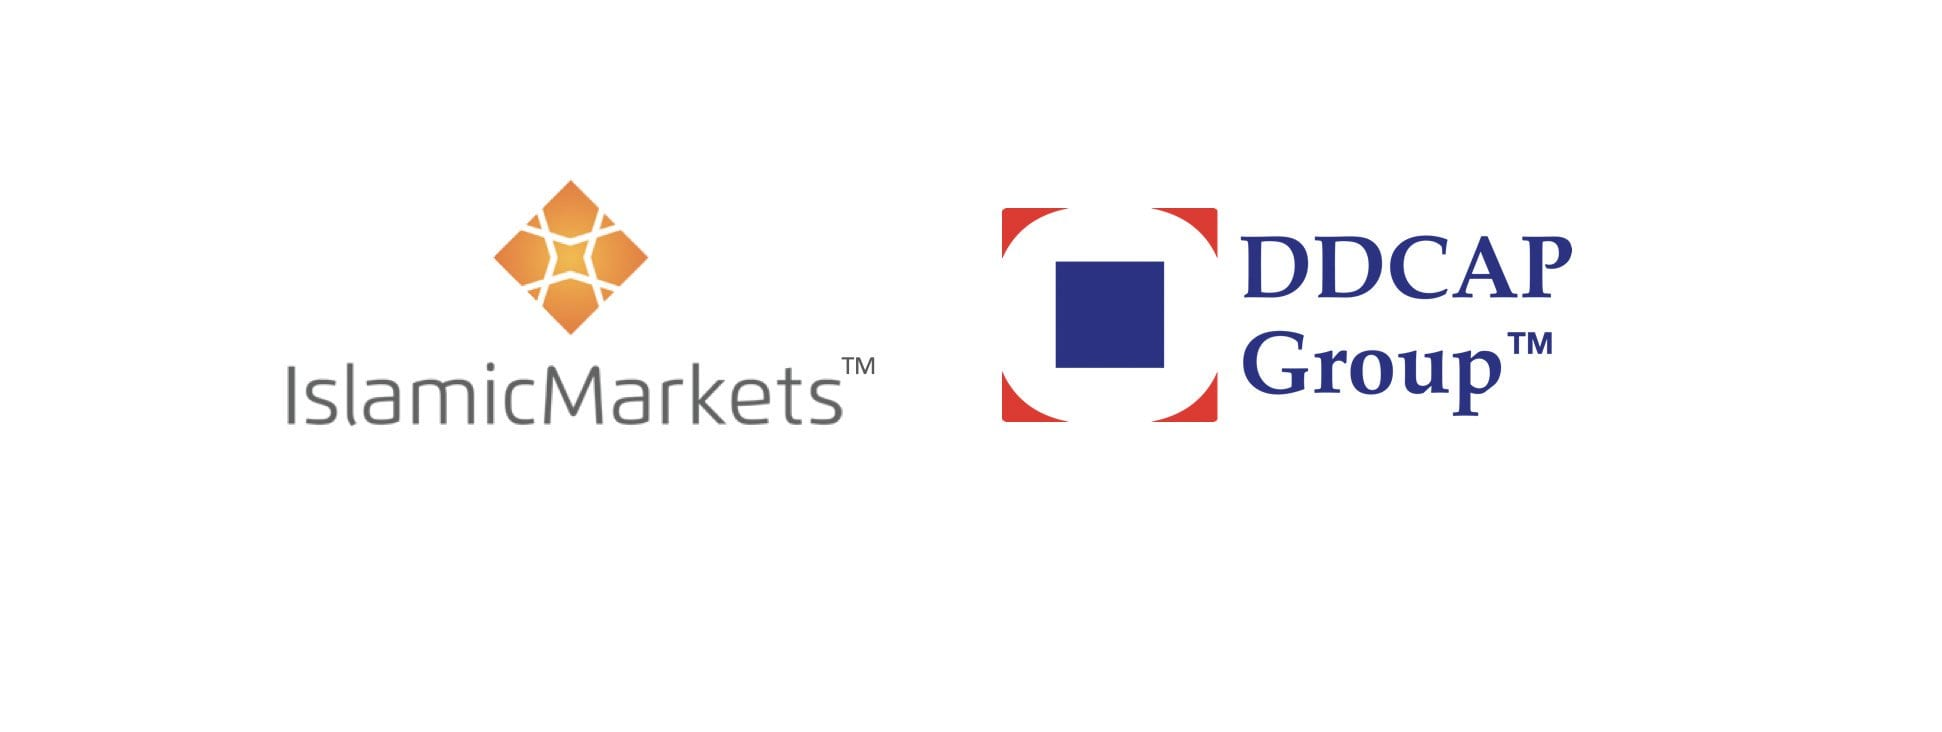 DDCAP Group™ are delighted to announce our investment in IslamicMarkets.com.